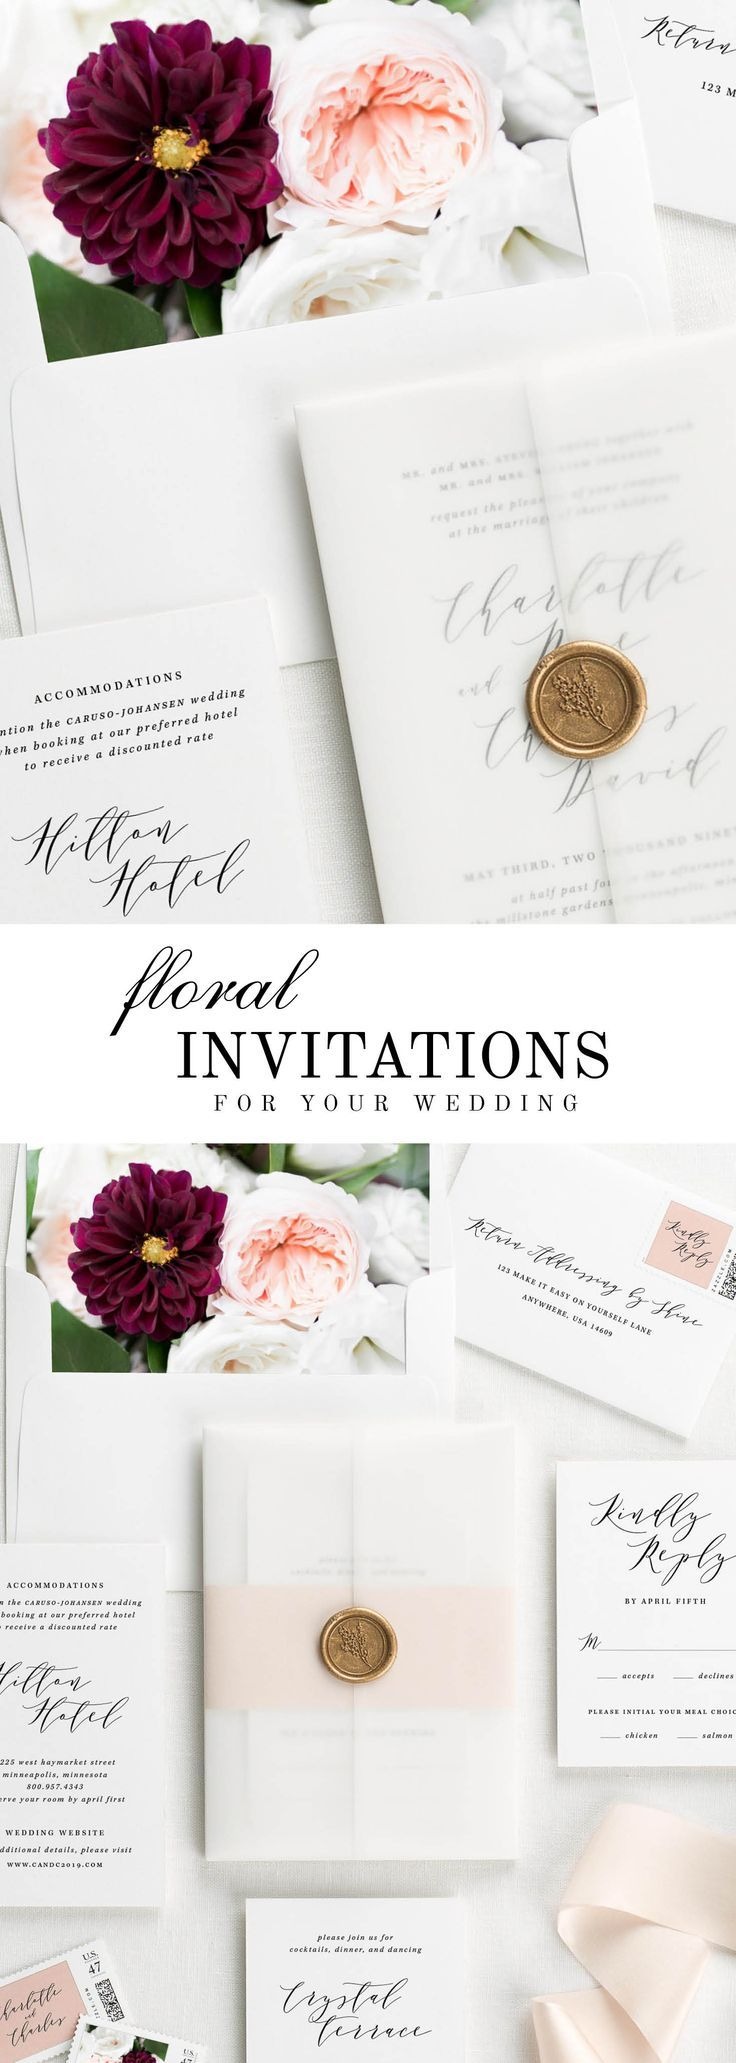 first line of wedding invitations%0A Charlotte Floral Wedding Invitations